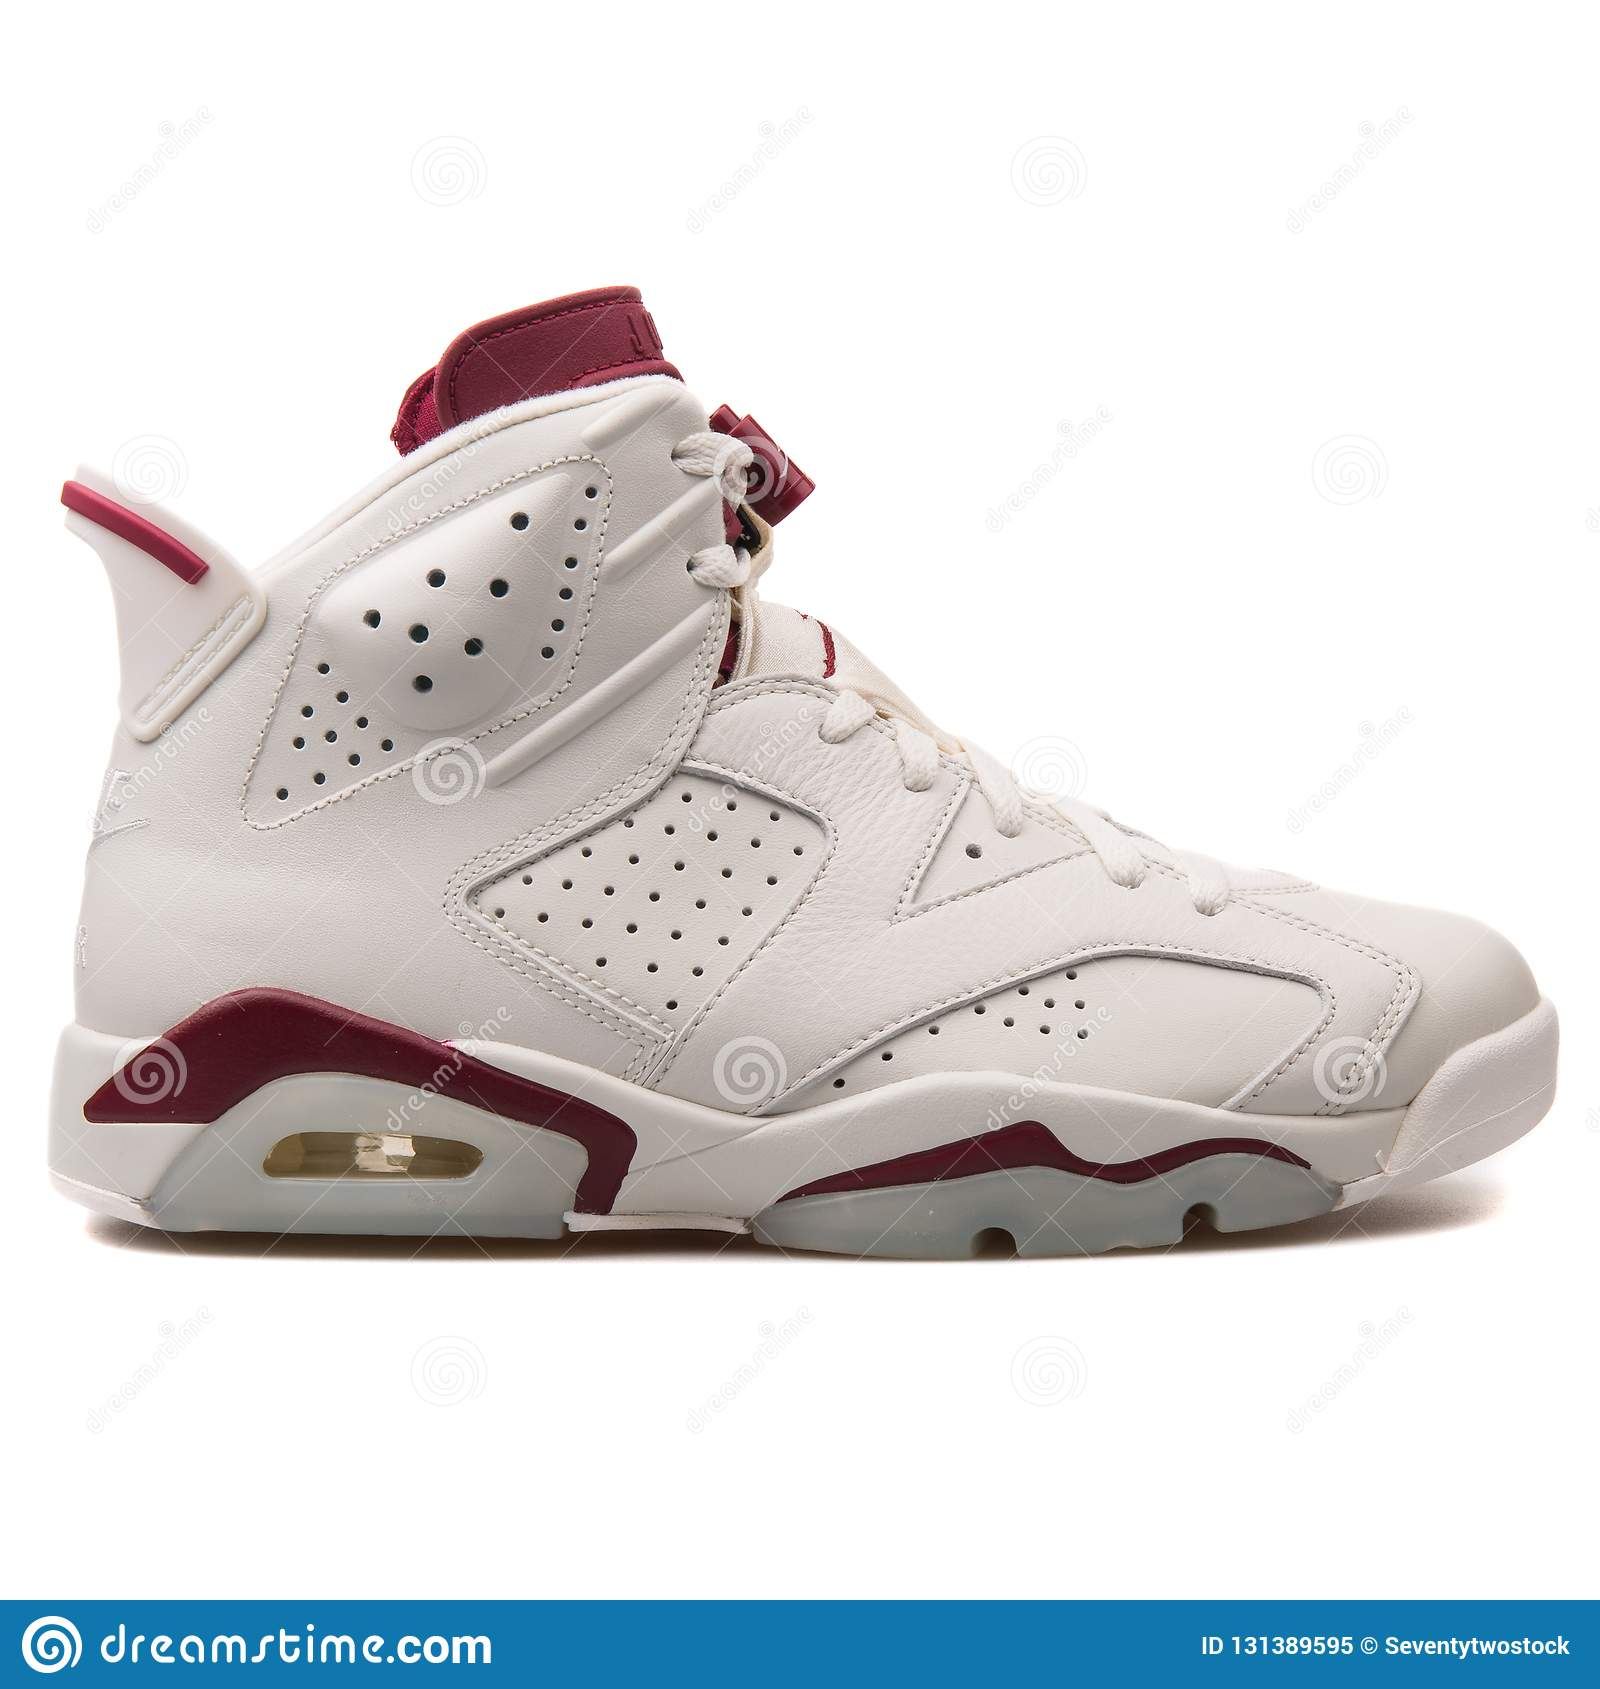 Nike Air Jordan 6 White And Red Sneaker Isolated On White Background ... d0c902529